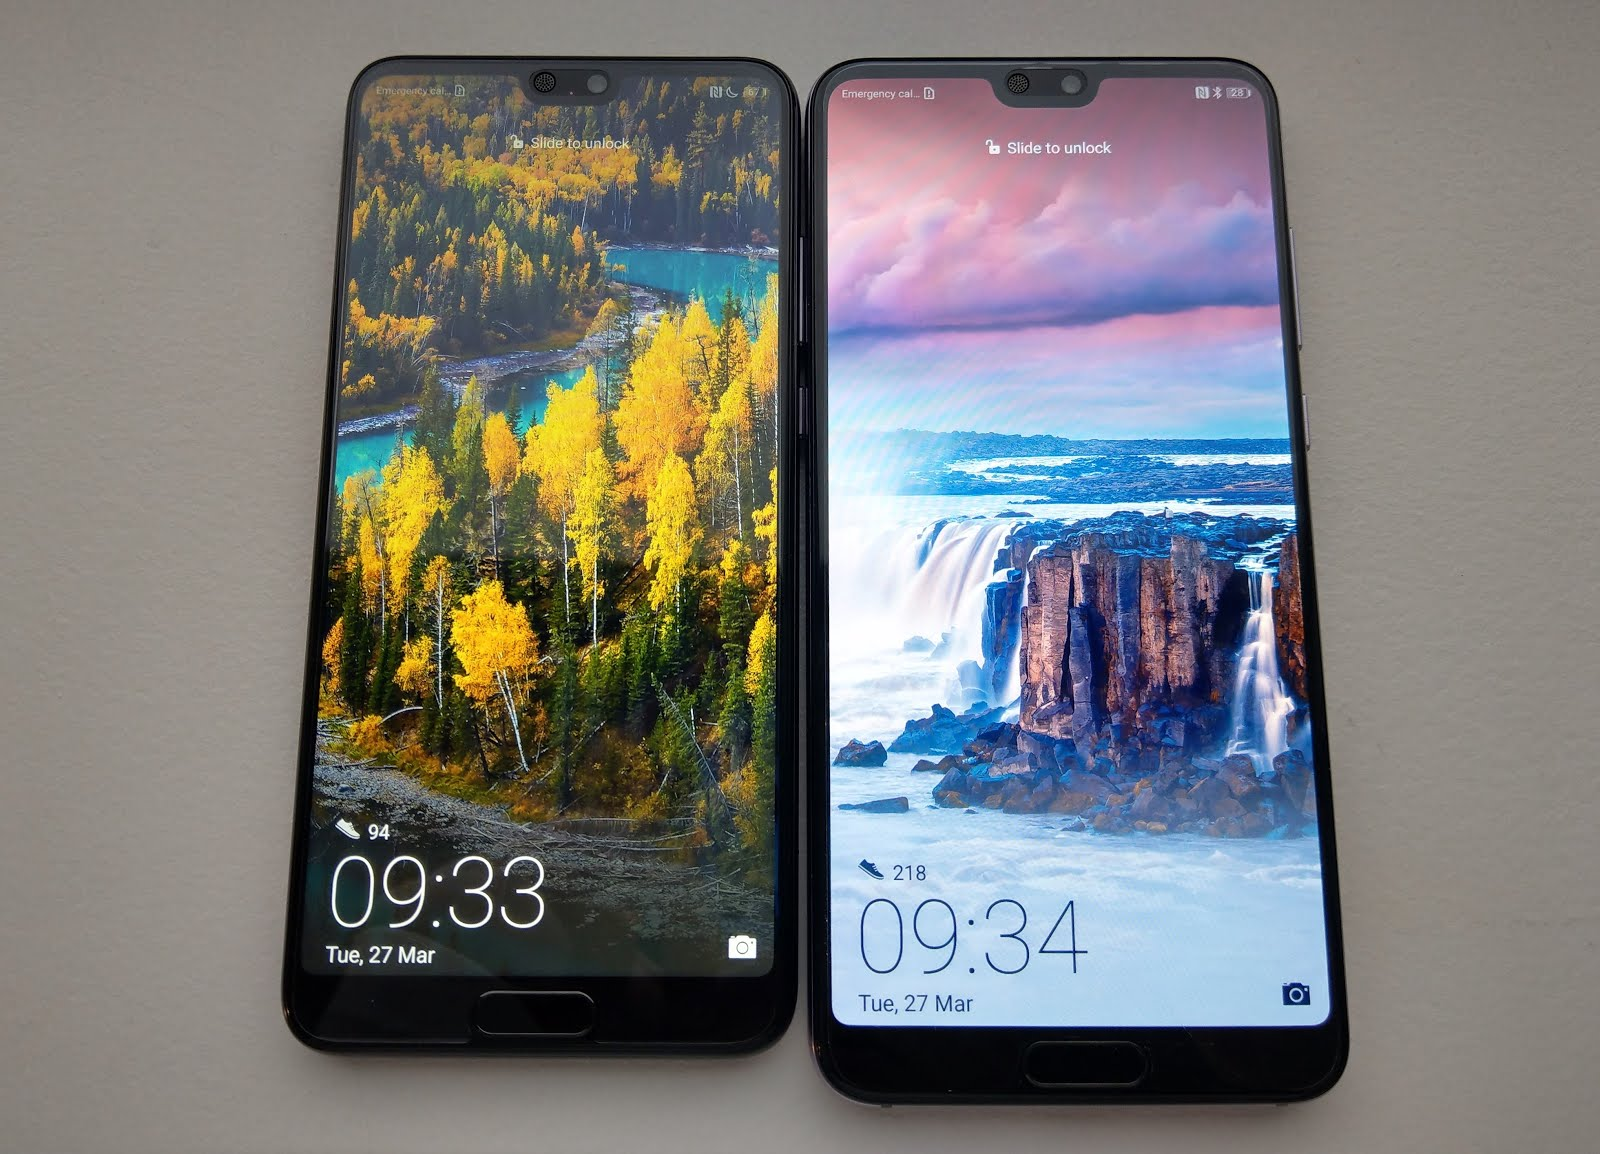 Huawei's P20 and P20 Pro VS Mate 10 Pro | What's New? - The